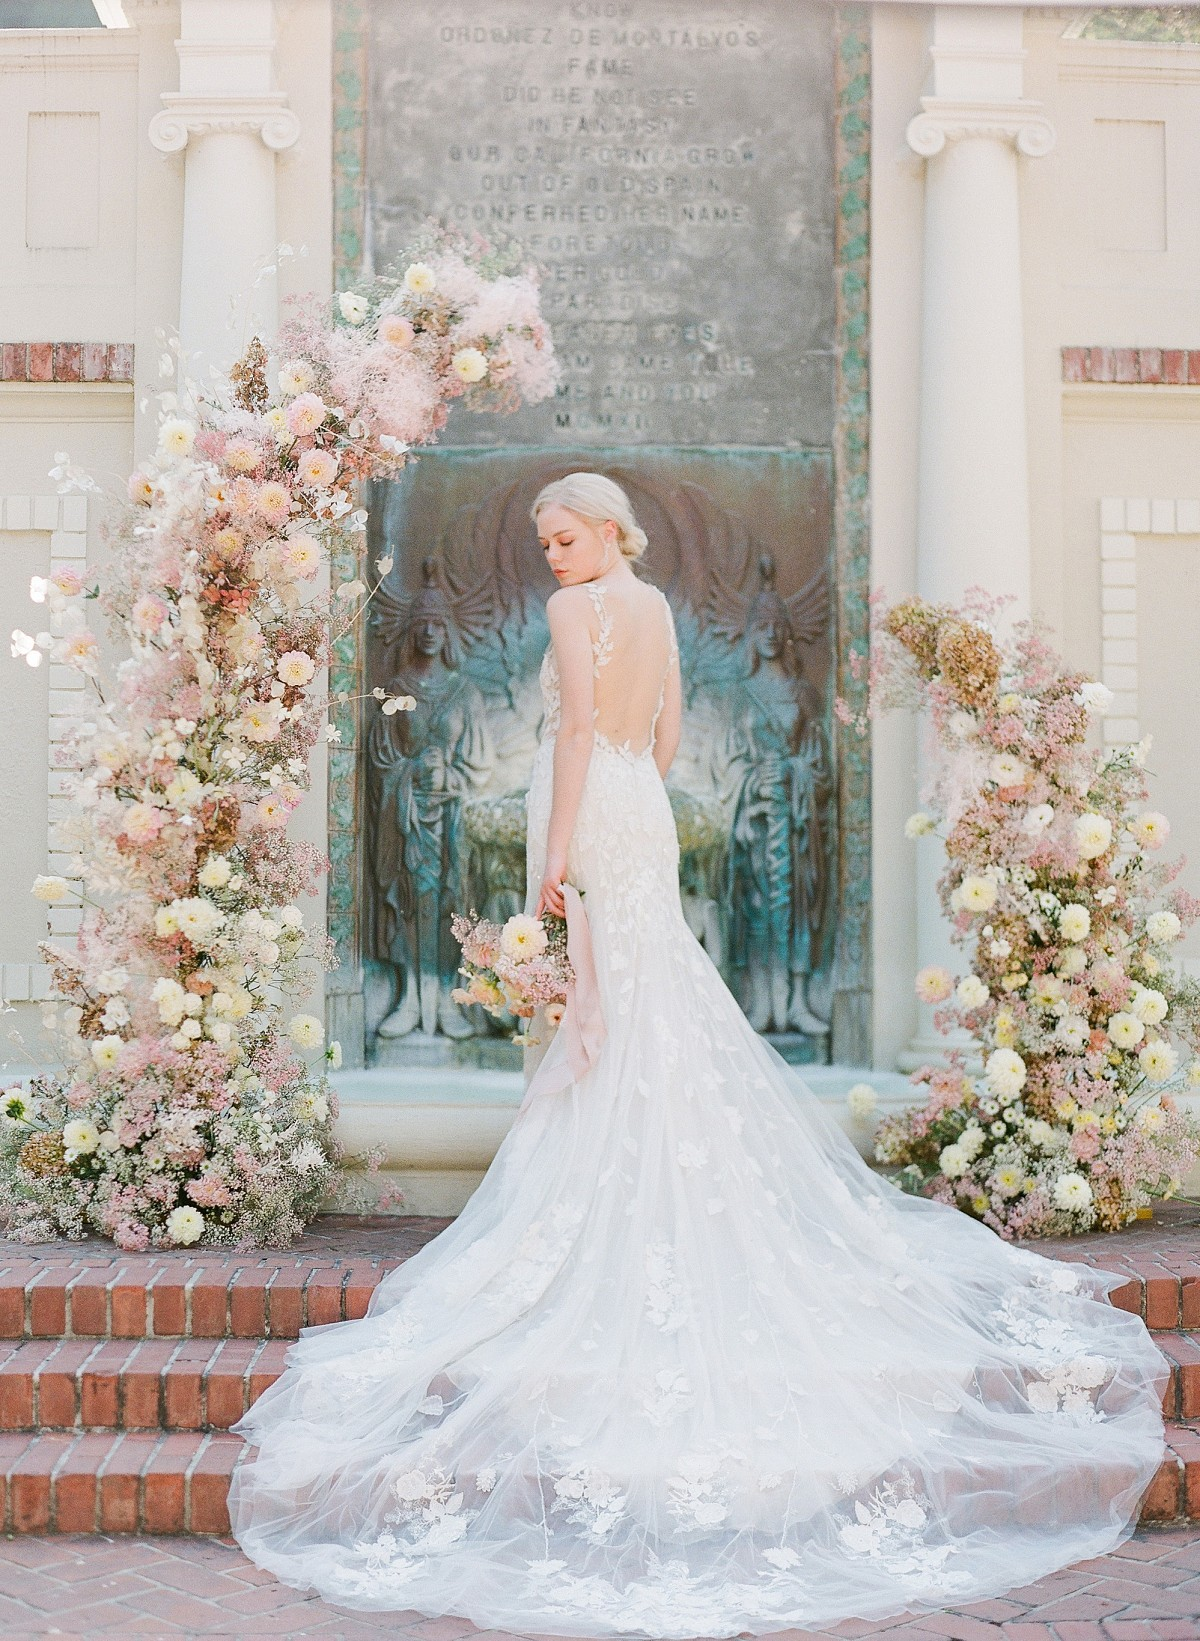 Tuscany in California with Monique Lhuillier Gowns